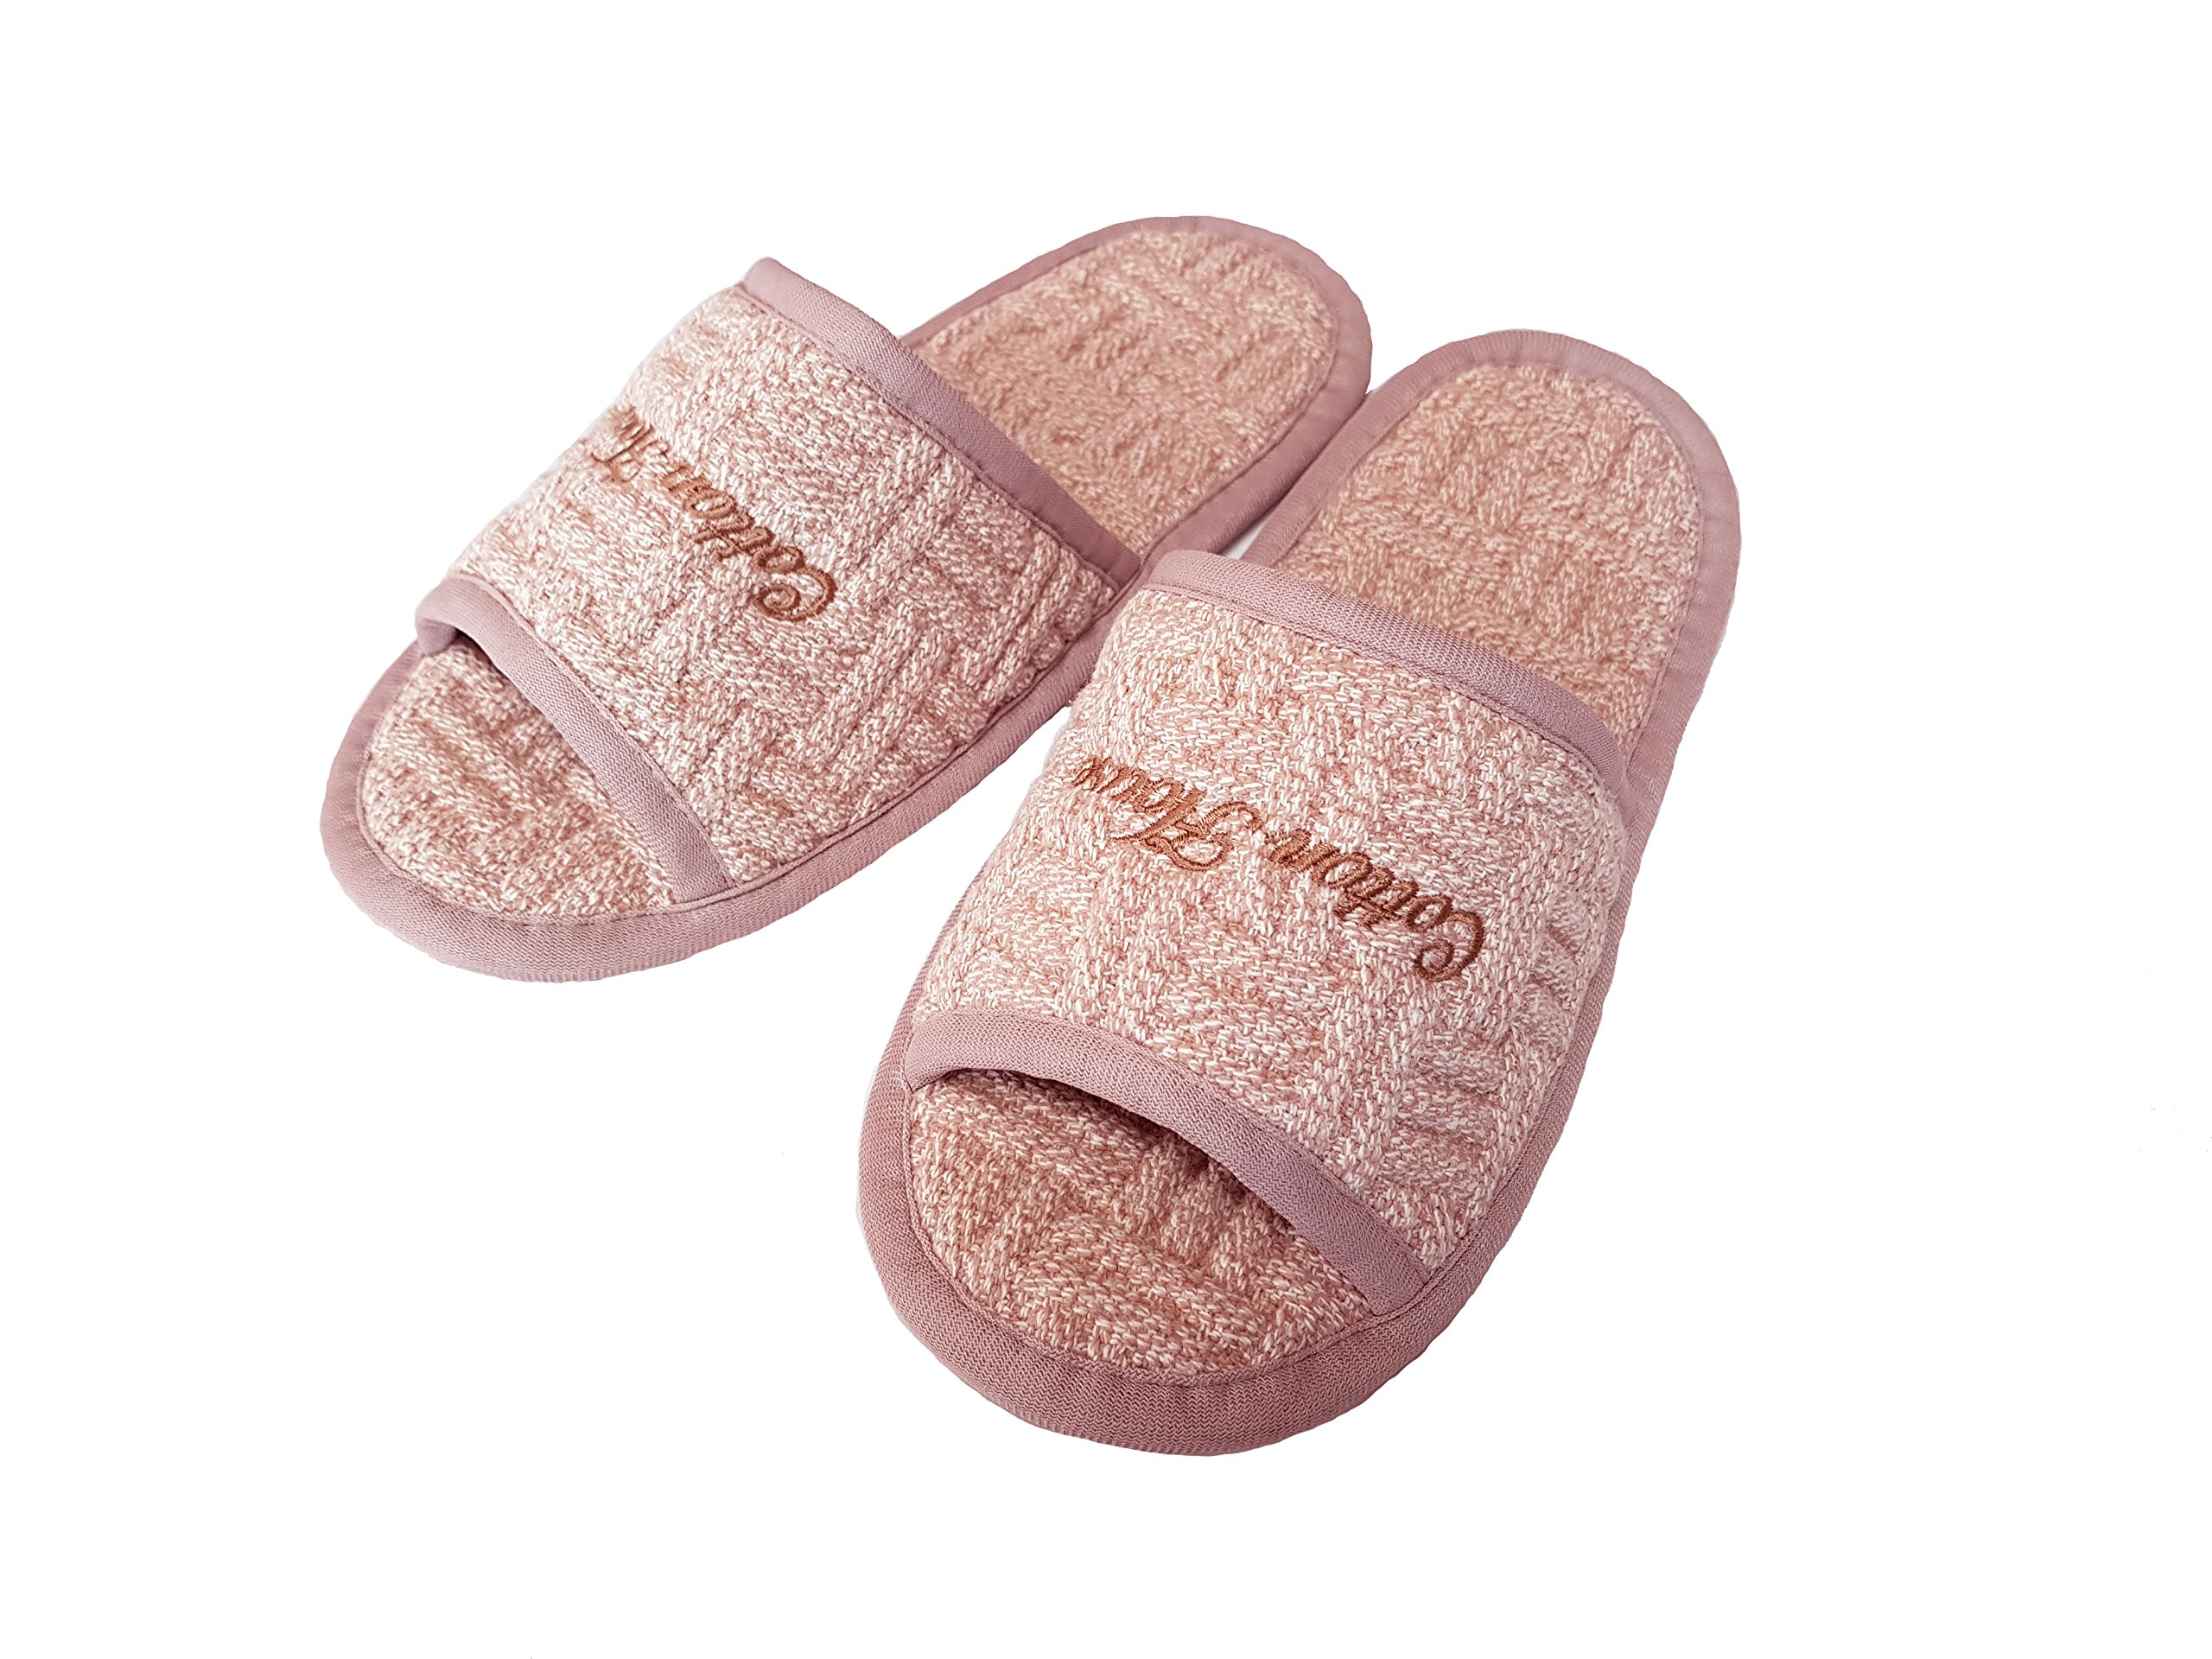 Momomat Cotton LCT Slippers for Indoors (Beige)